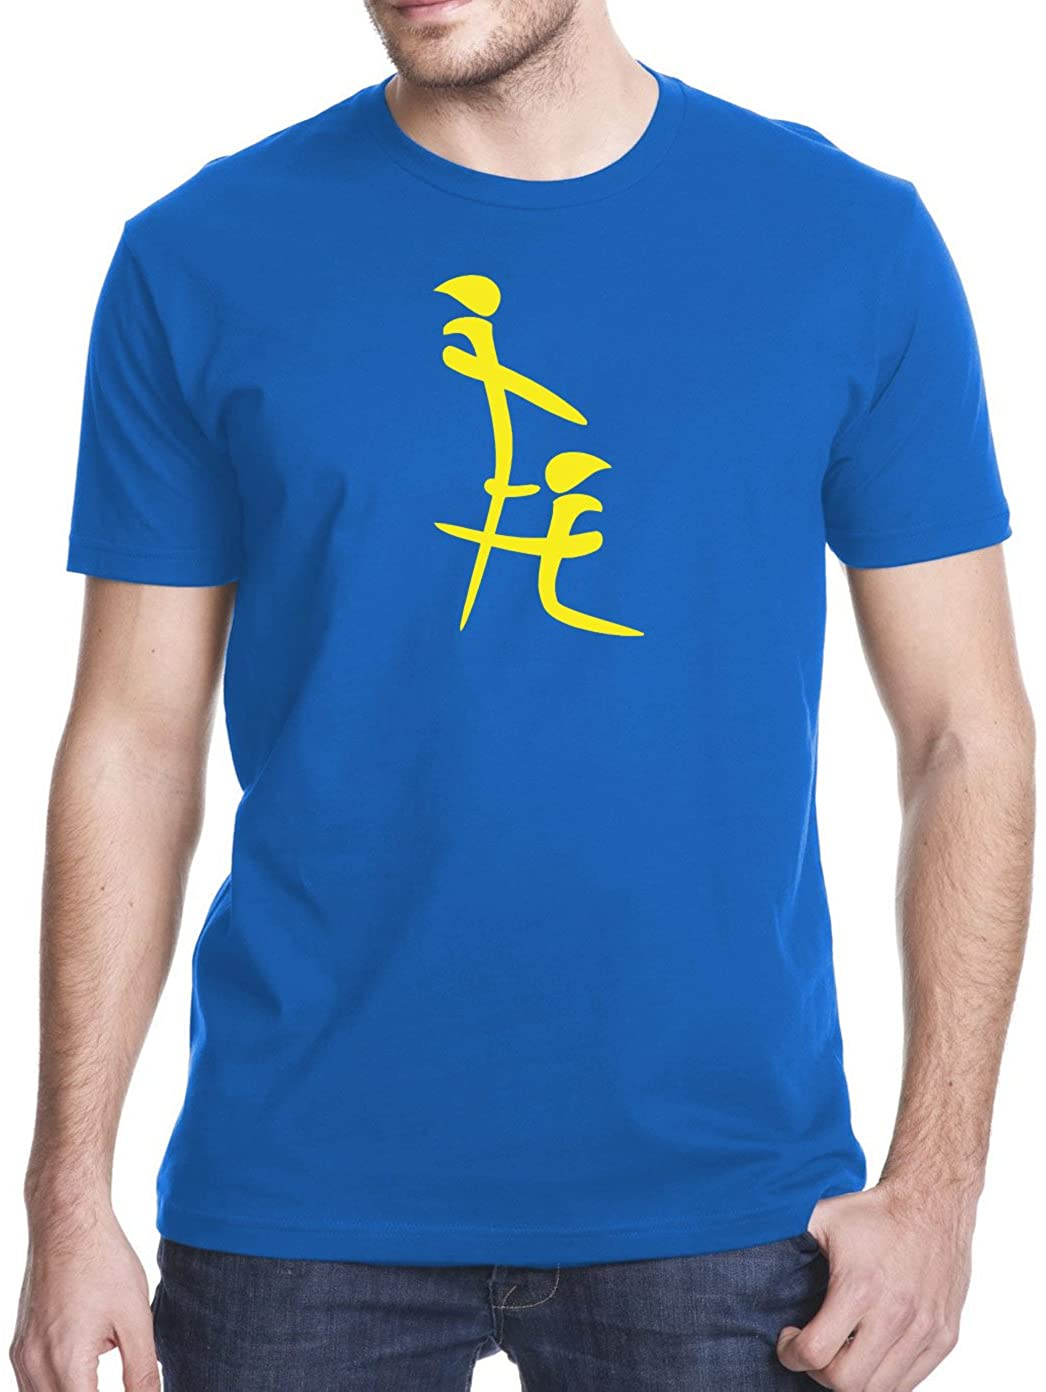 Gbond Apparel Chinese Characters Funny Rude BJ Oral T-Shirt